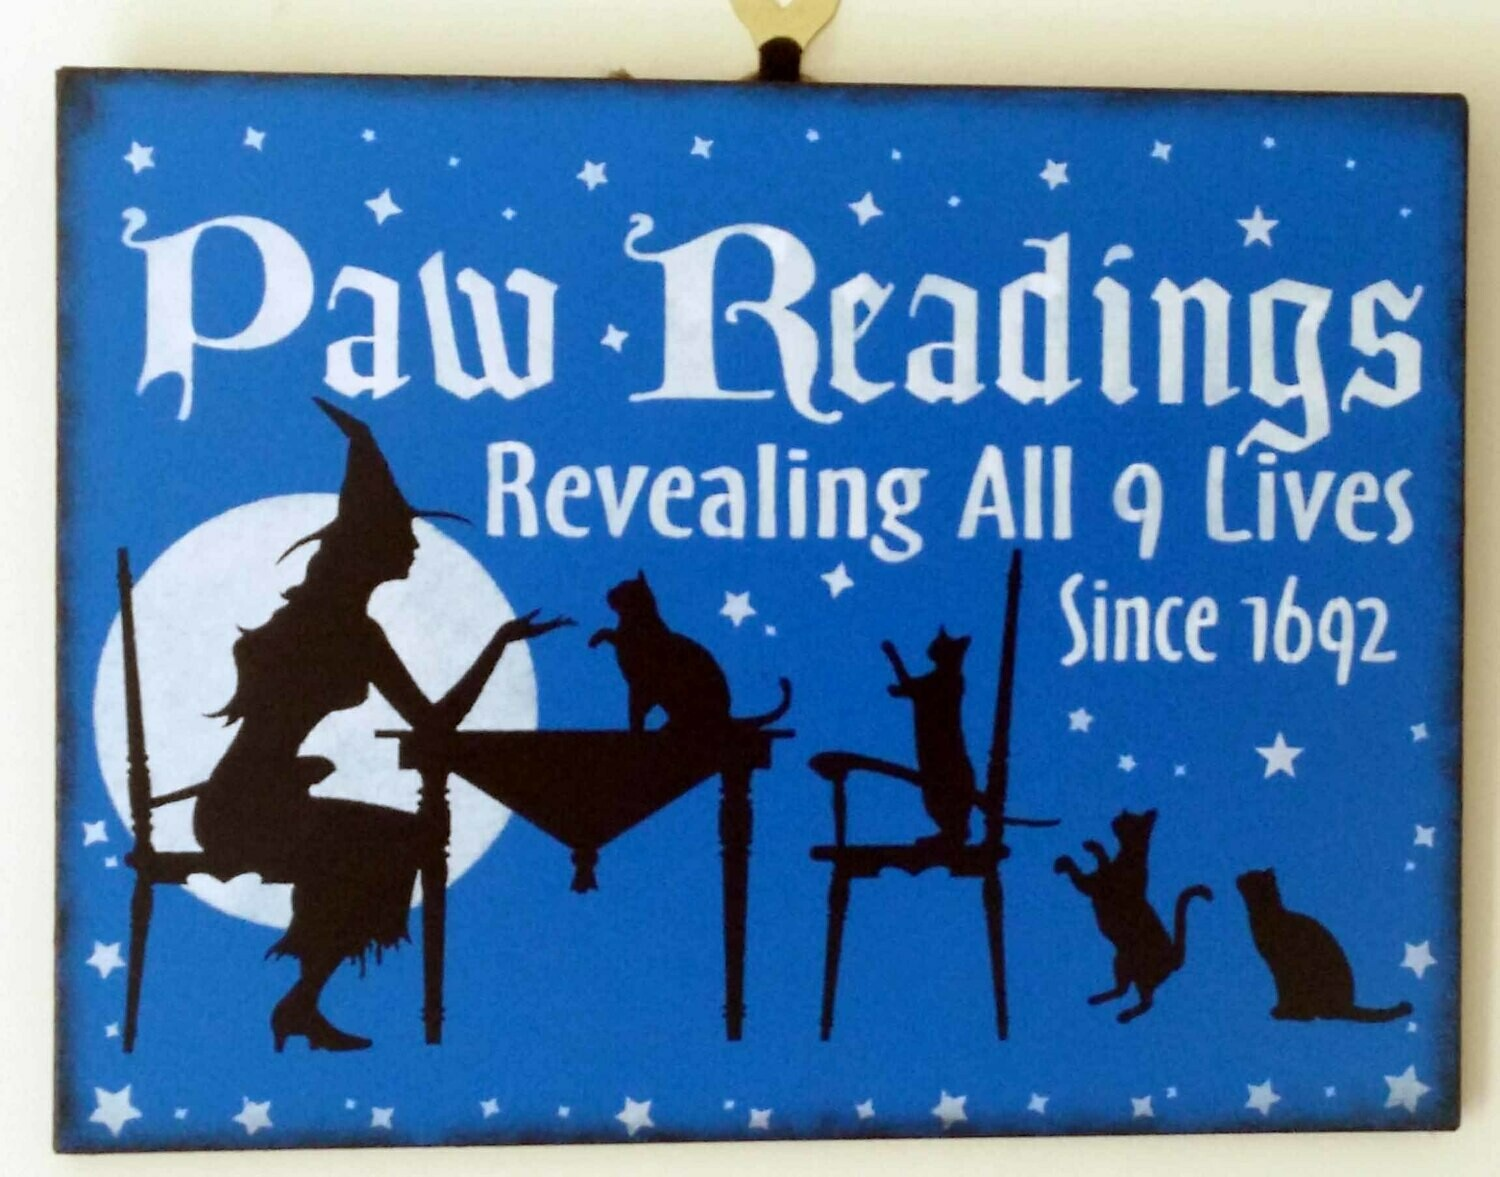 Paw Readings Wooden Sign - Blue